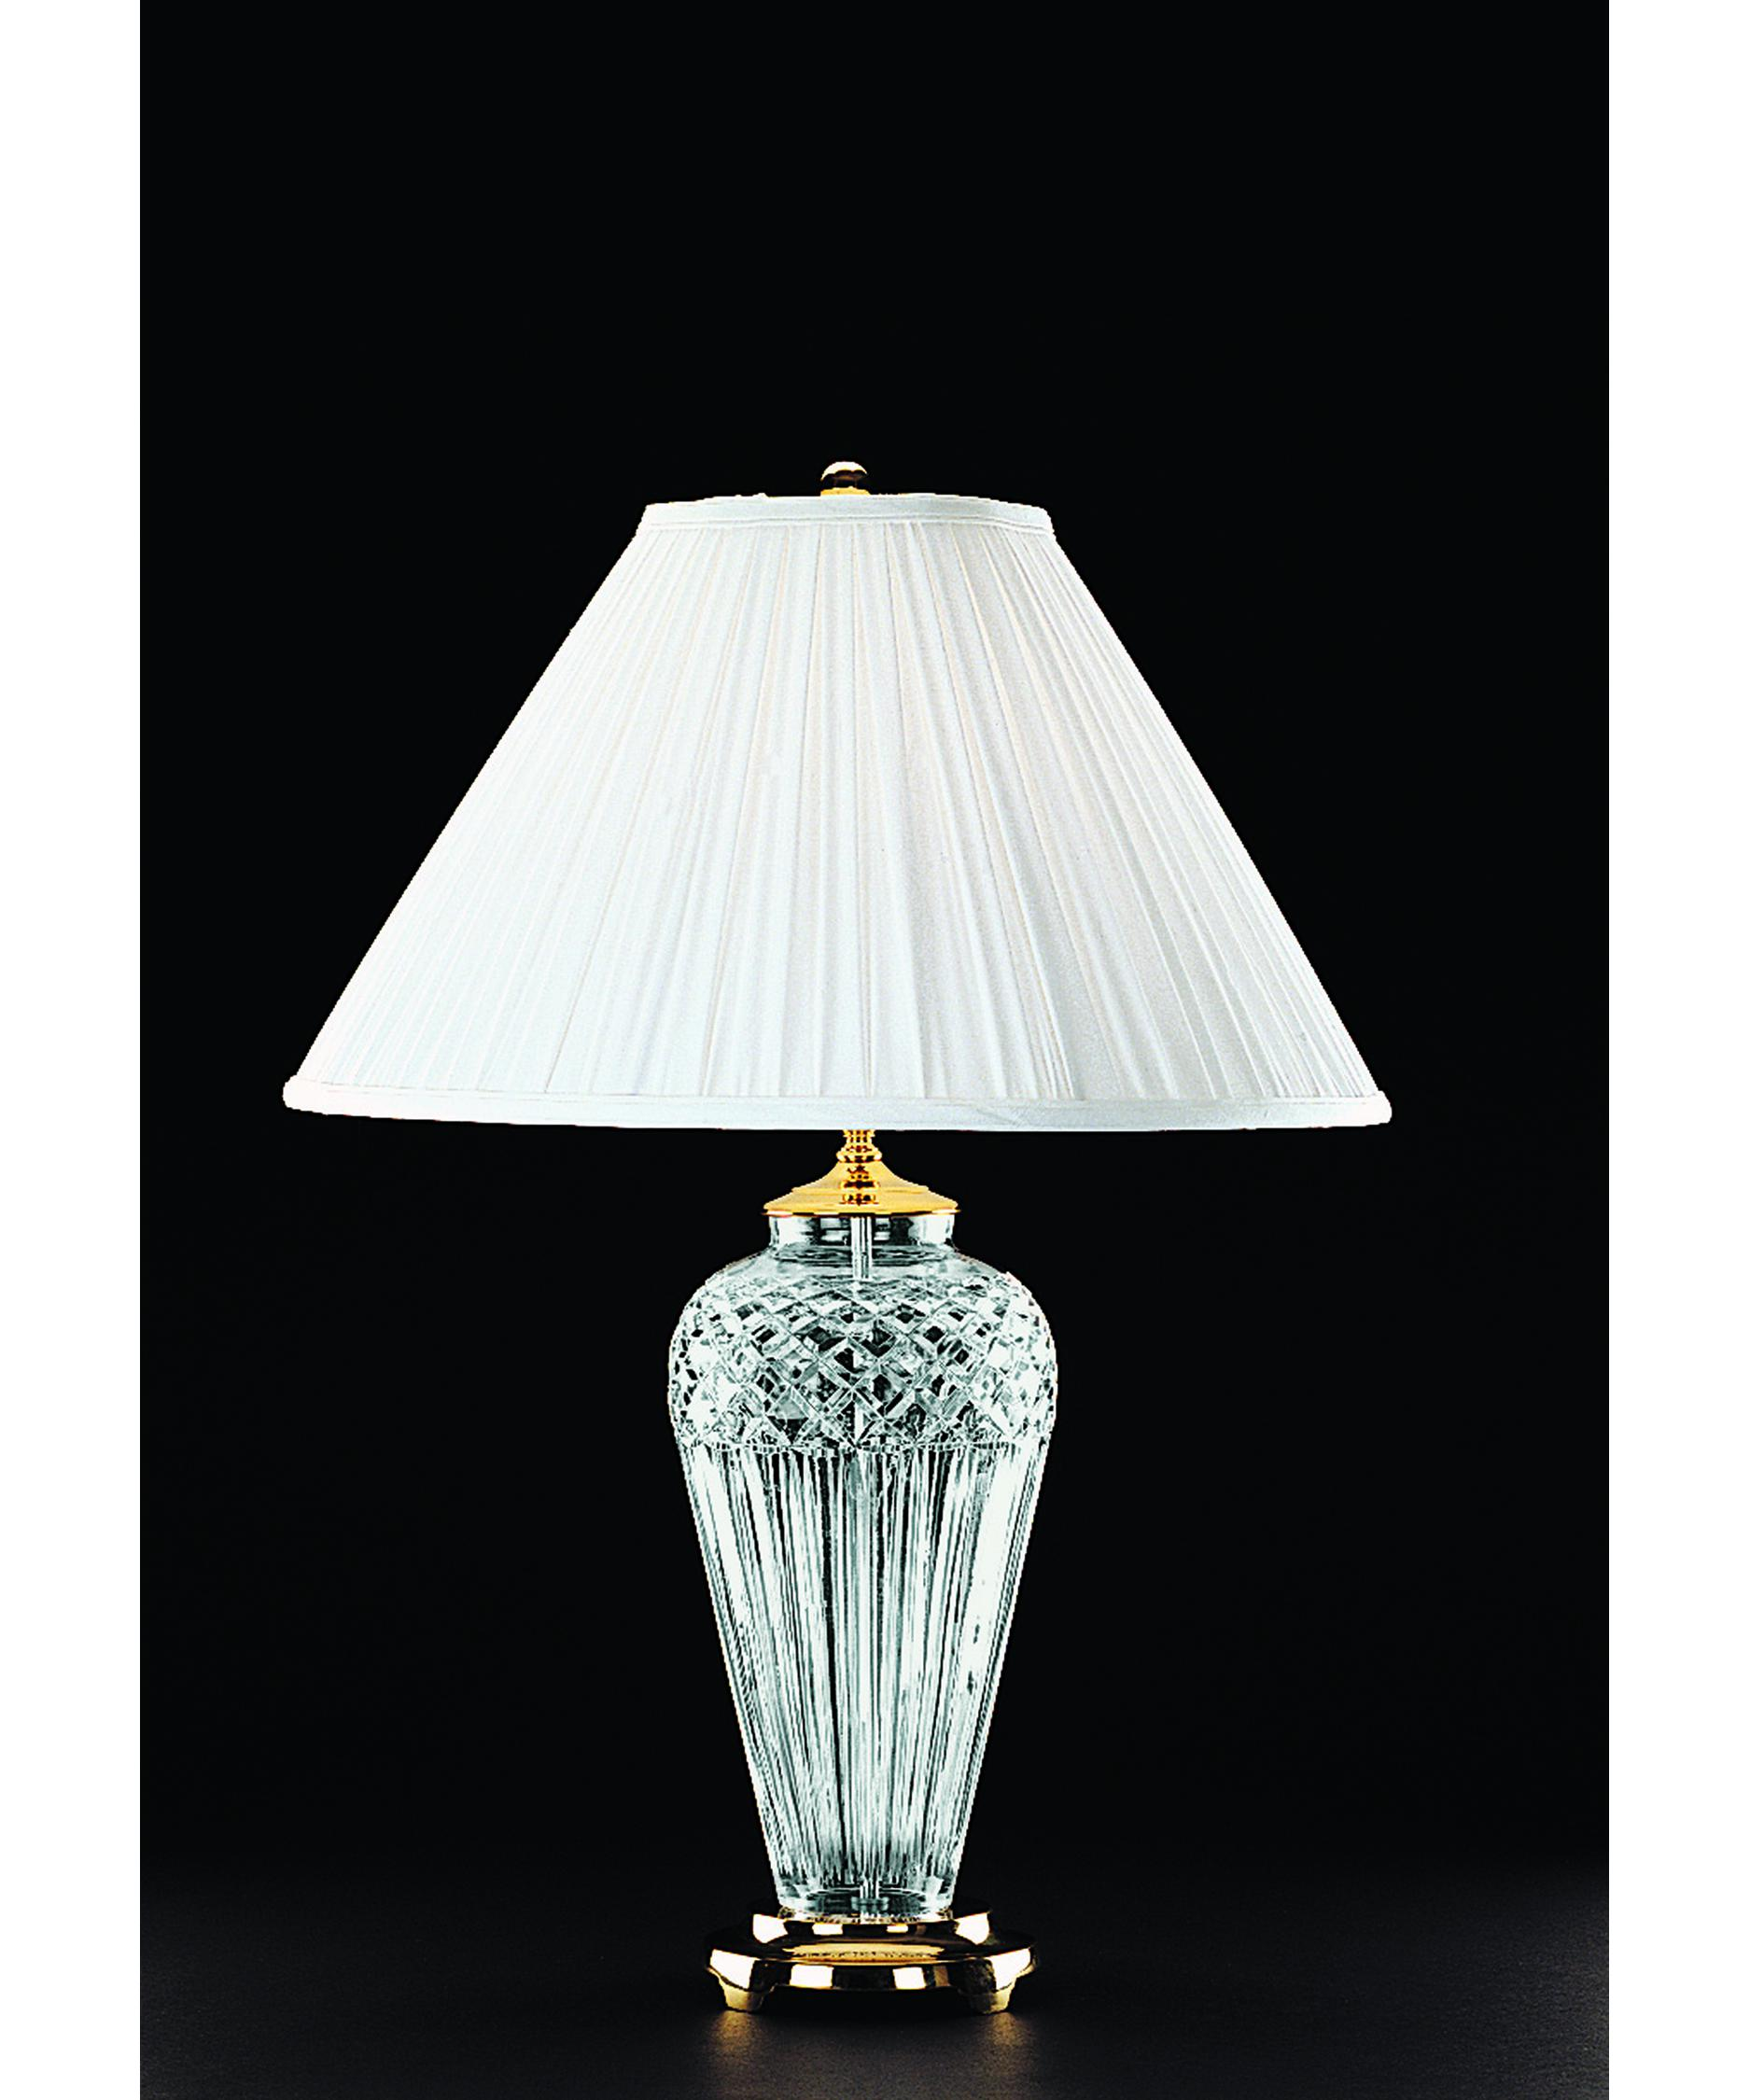 Lovely Shown In Polished Brass Finish And White Soft Pleat Coolie Soft Shade Shade